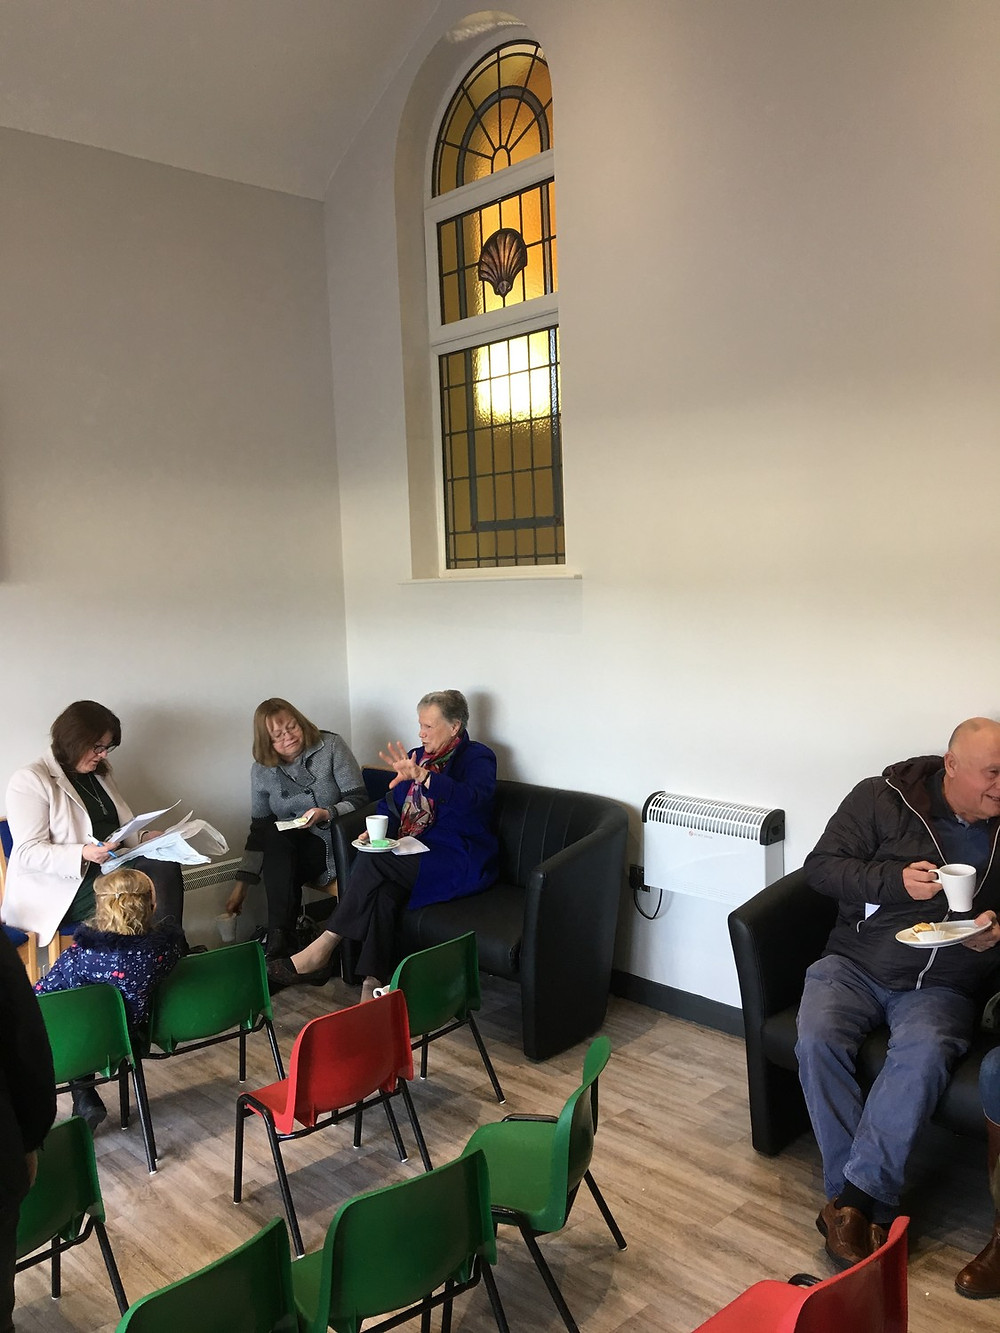 Congregation members using the new space